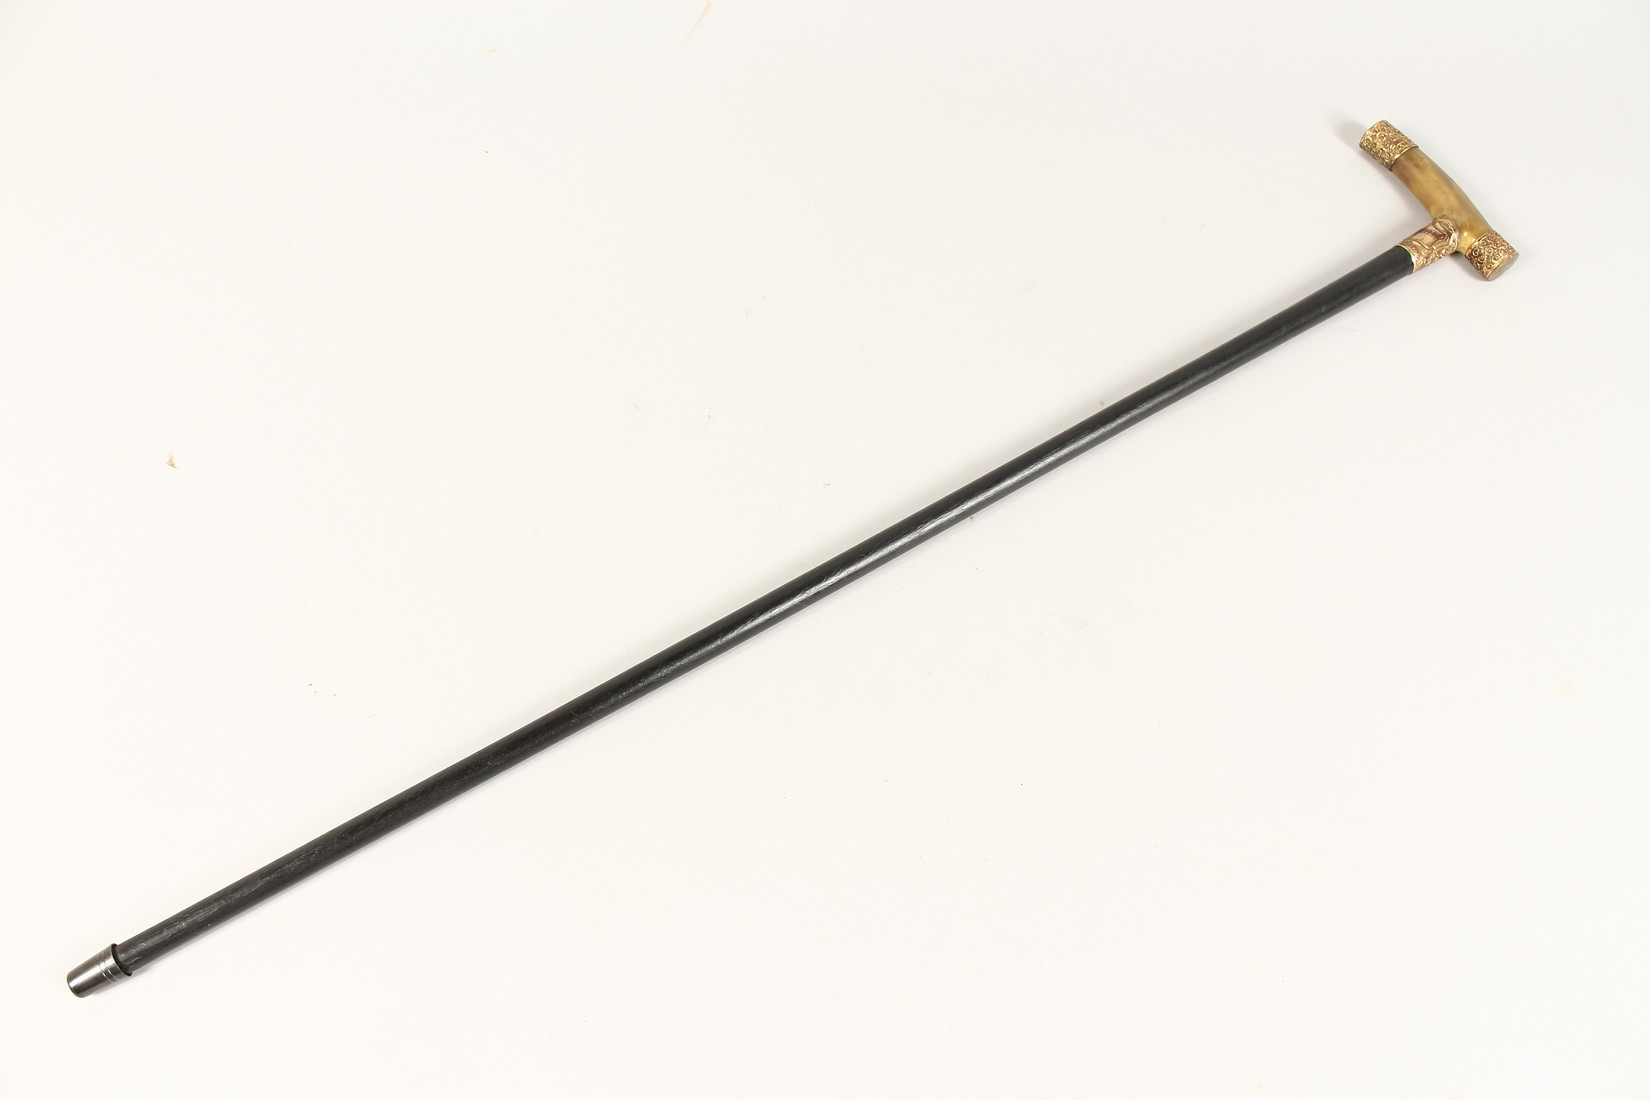 A RHINO HANDLE WALKING STICK with tablet 'R.E. HODGSON' 33ins long. - Image 7 of 7